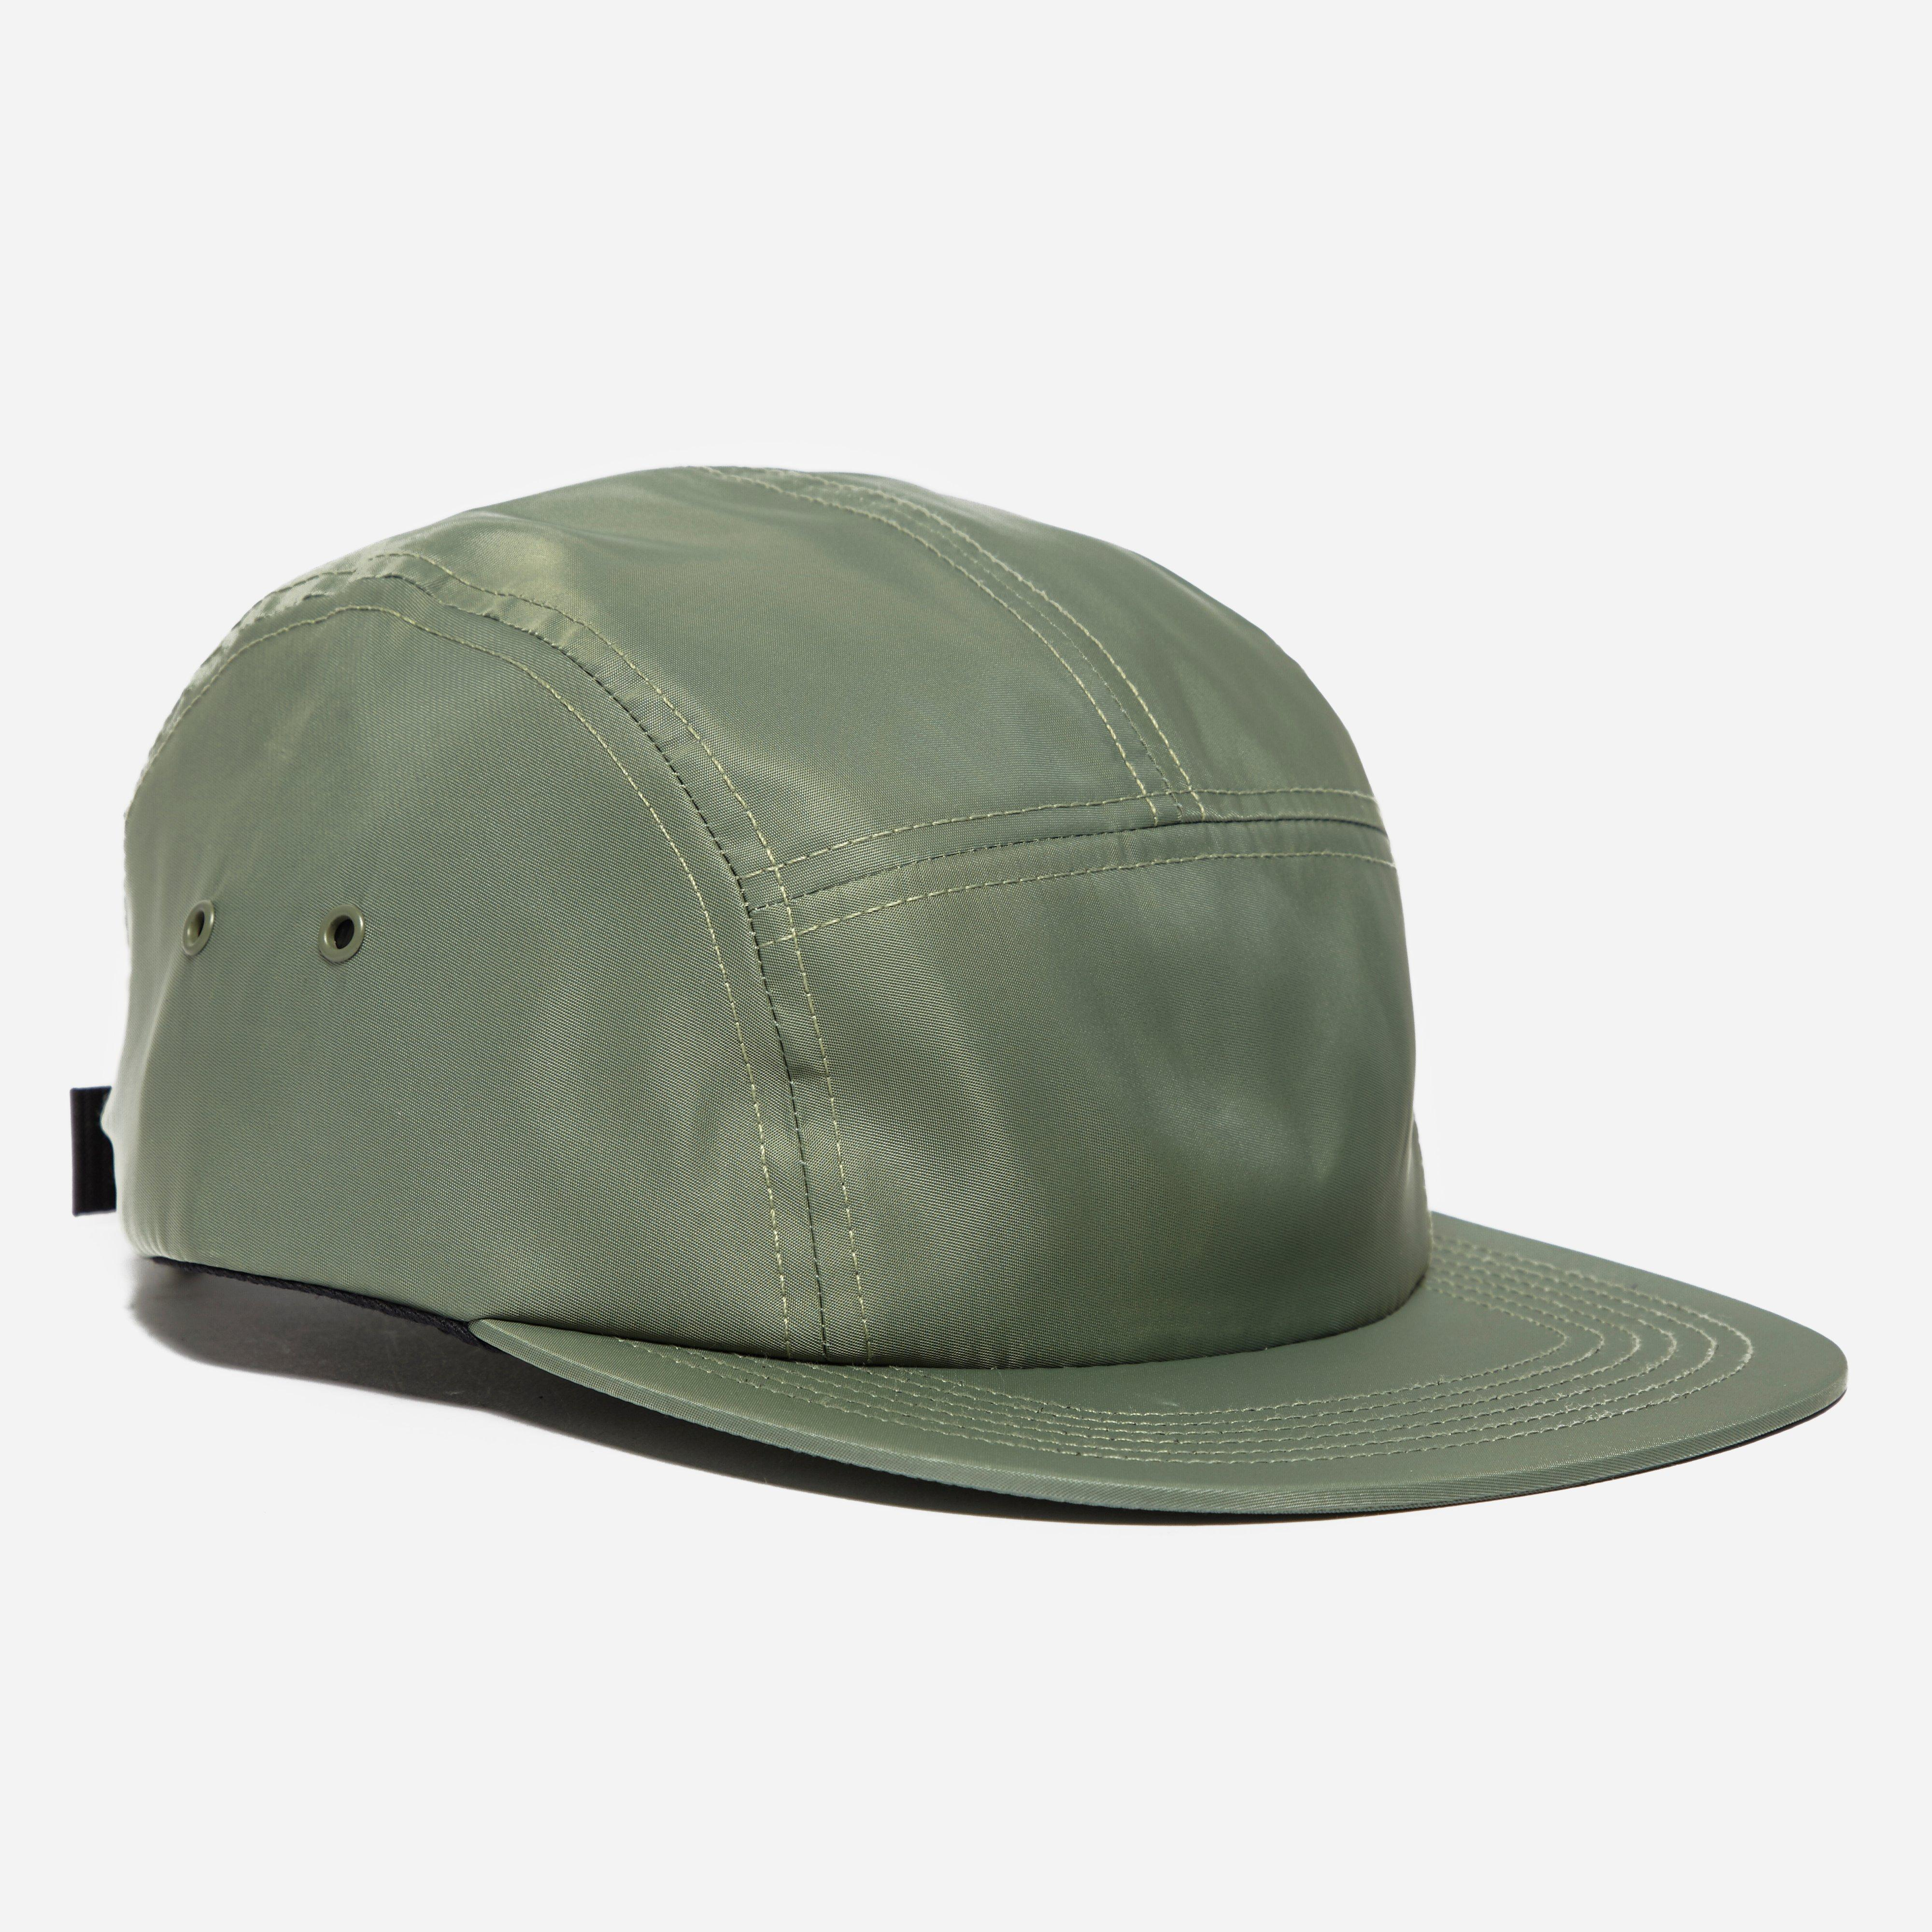 Norse Projects 5 Panel Nylon Cap